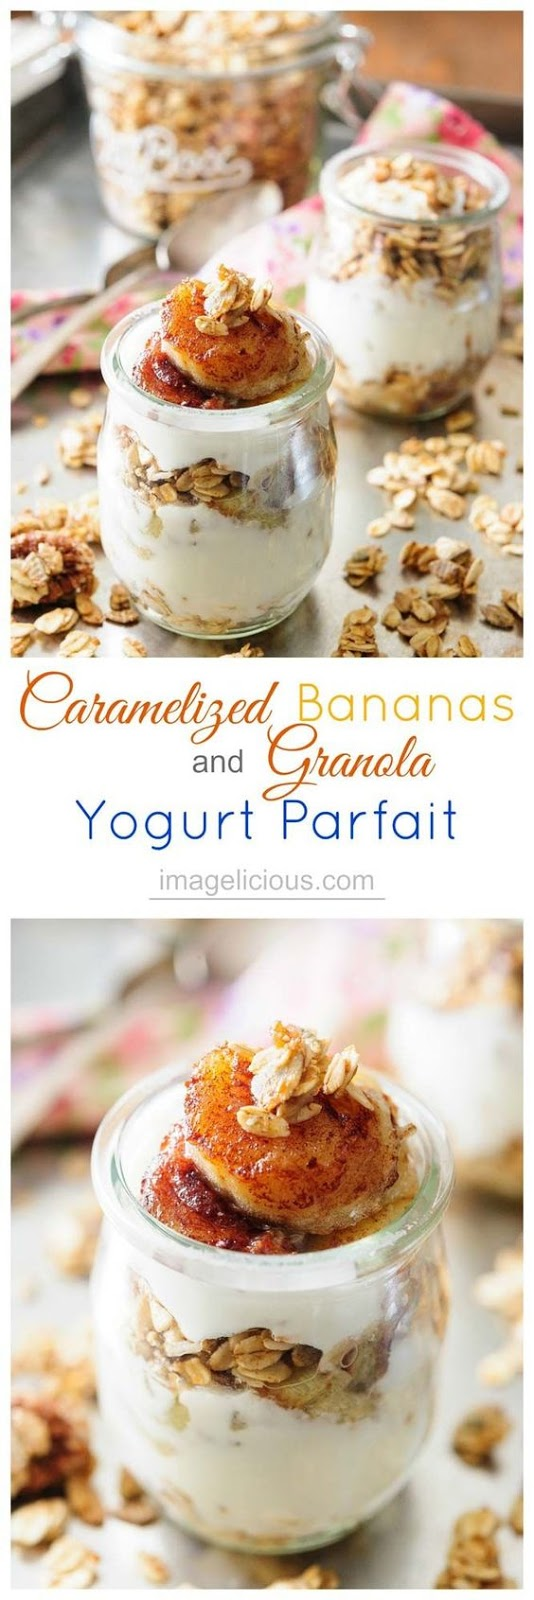 CARAMELIZED BANANAS AND GRANOLA YOGURT PARFAIT